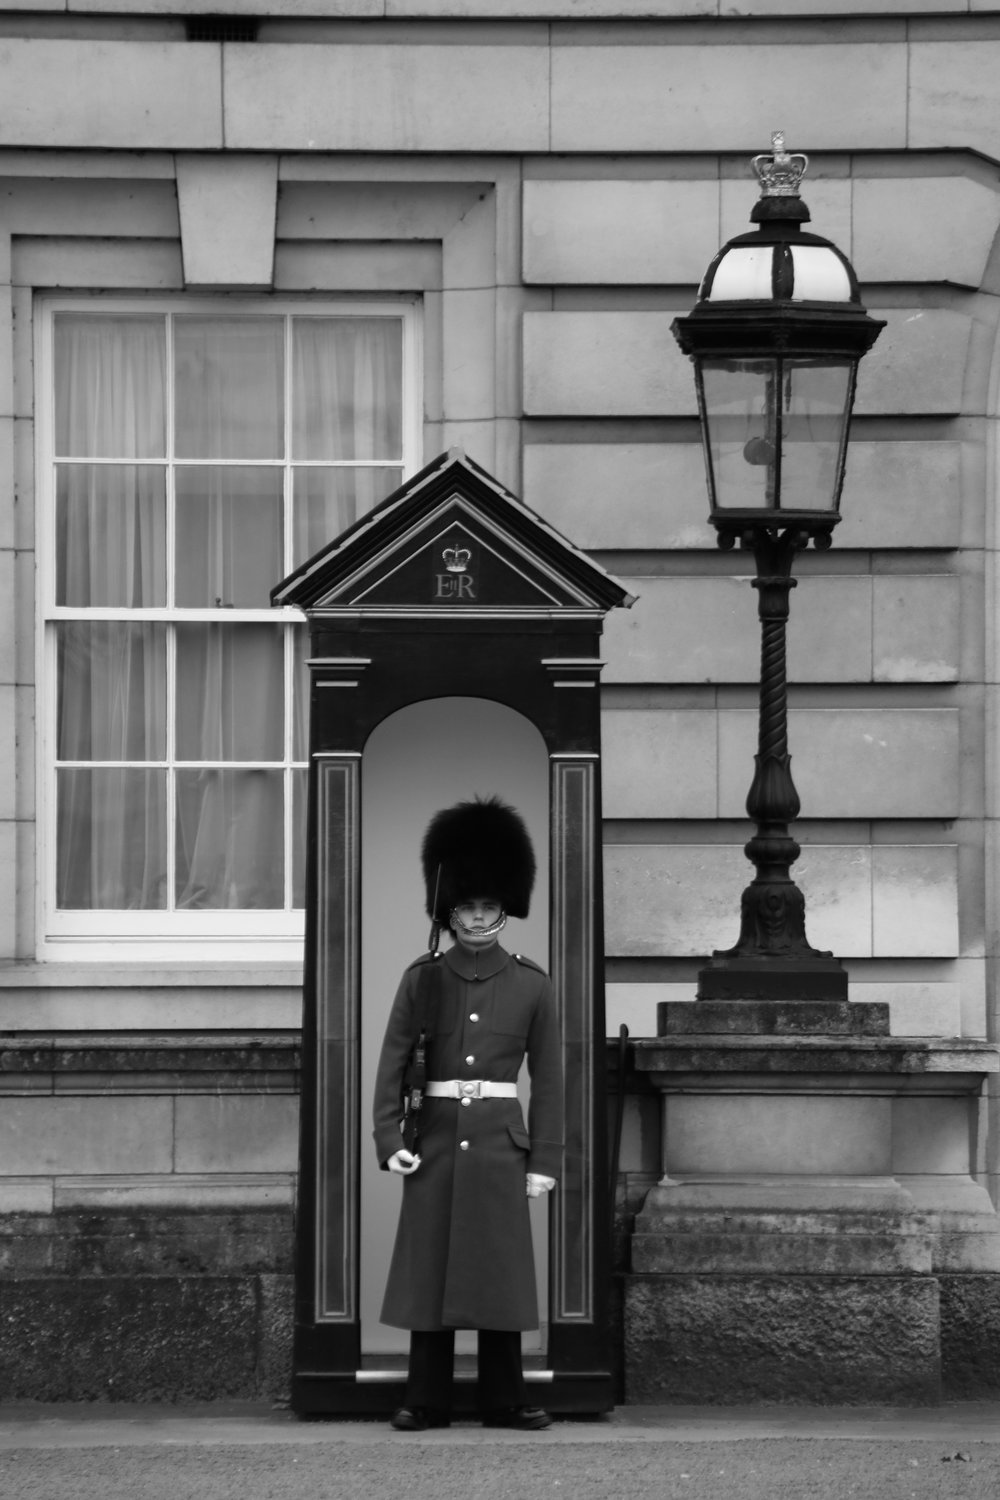 Beefeater at post, Buckingham Palace, London, England   https://www.ebay.com/itm/263679819198?ssPageName=STRK:MESELX:IT&_trksid=p3984.m1555.l2649